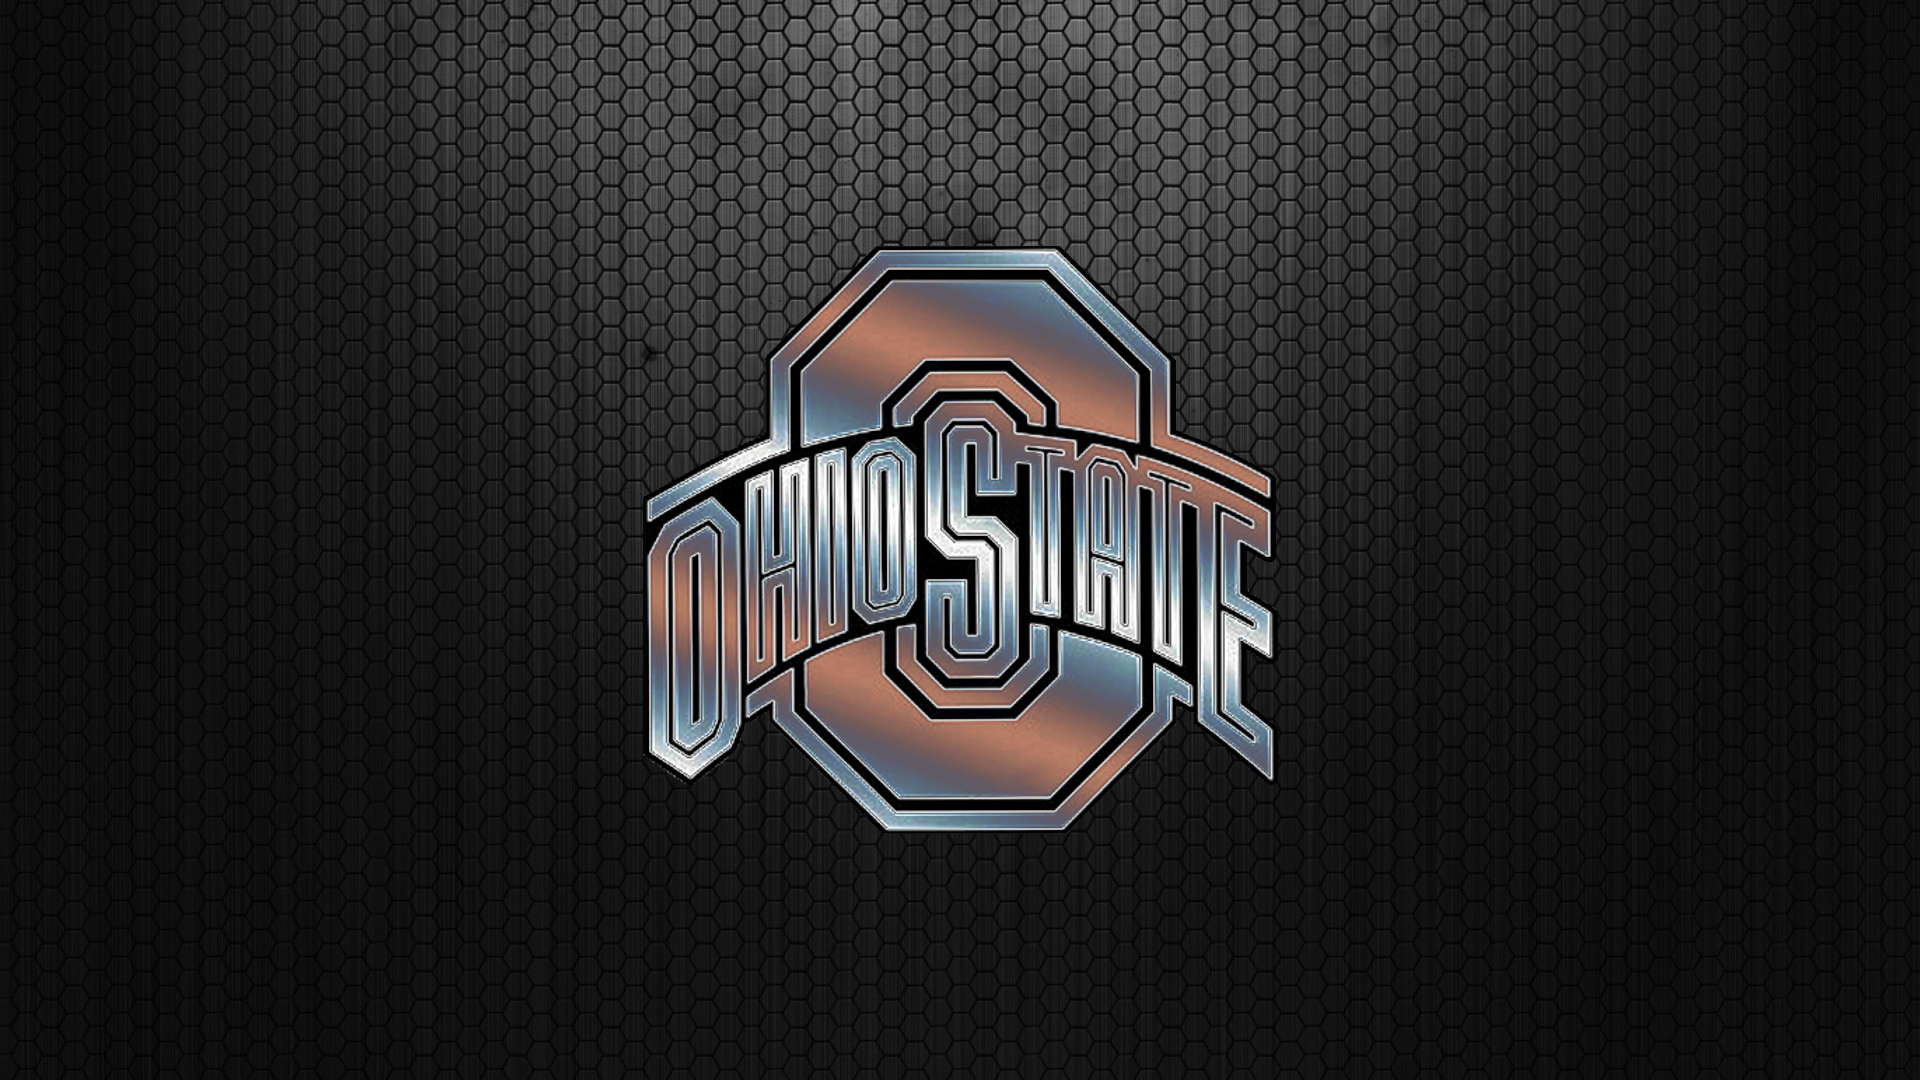 Osu Wallpaper 15 Ohio State Football Wallpaper 29317581